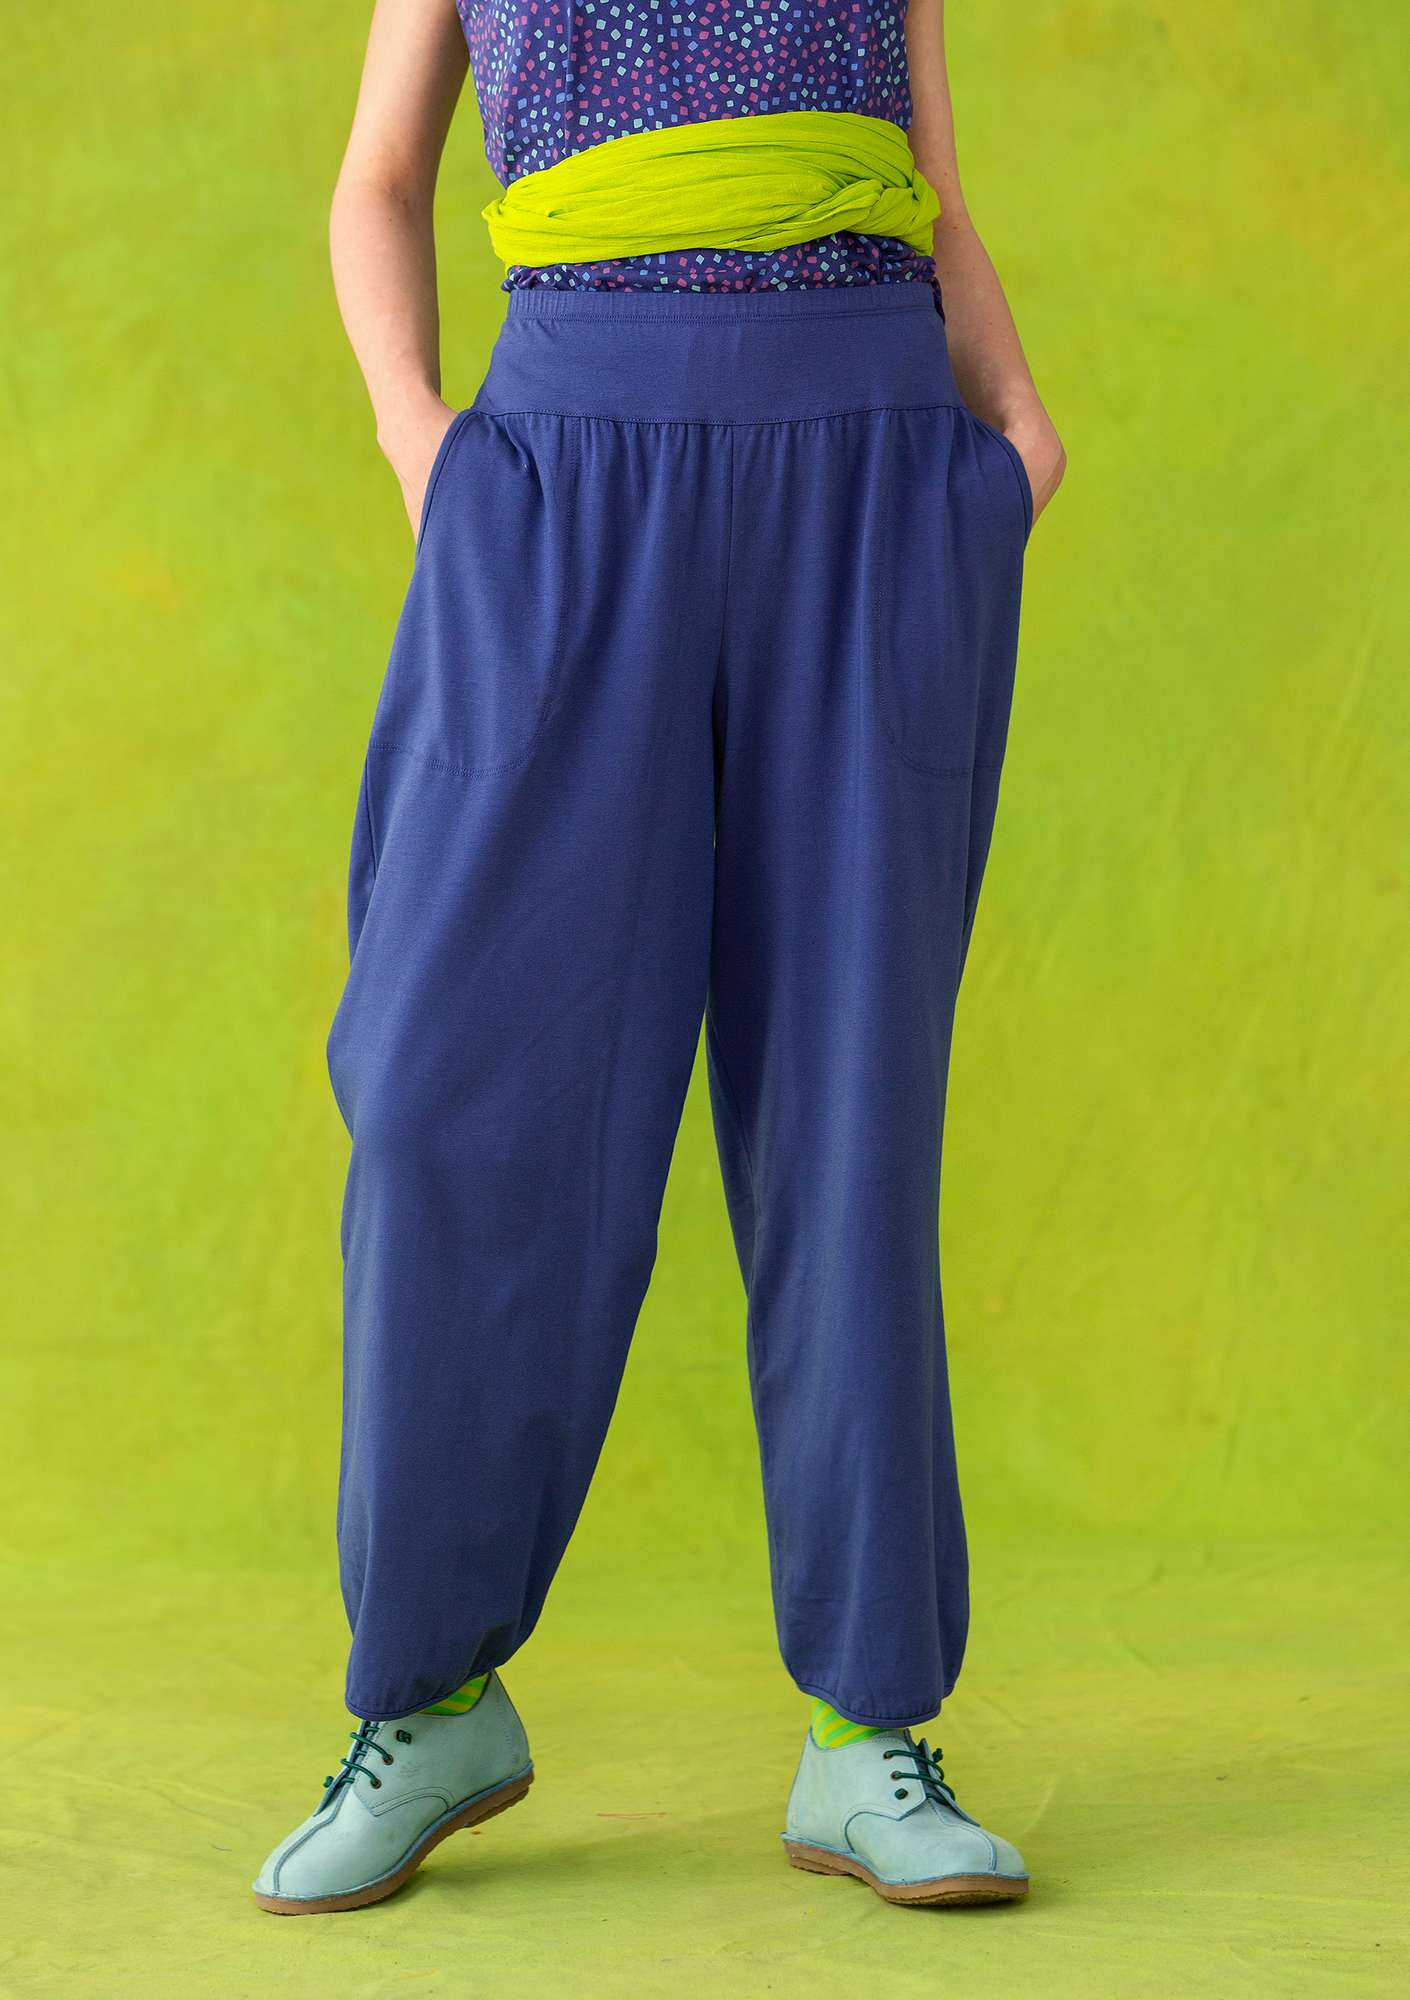 Yoga trousers violet